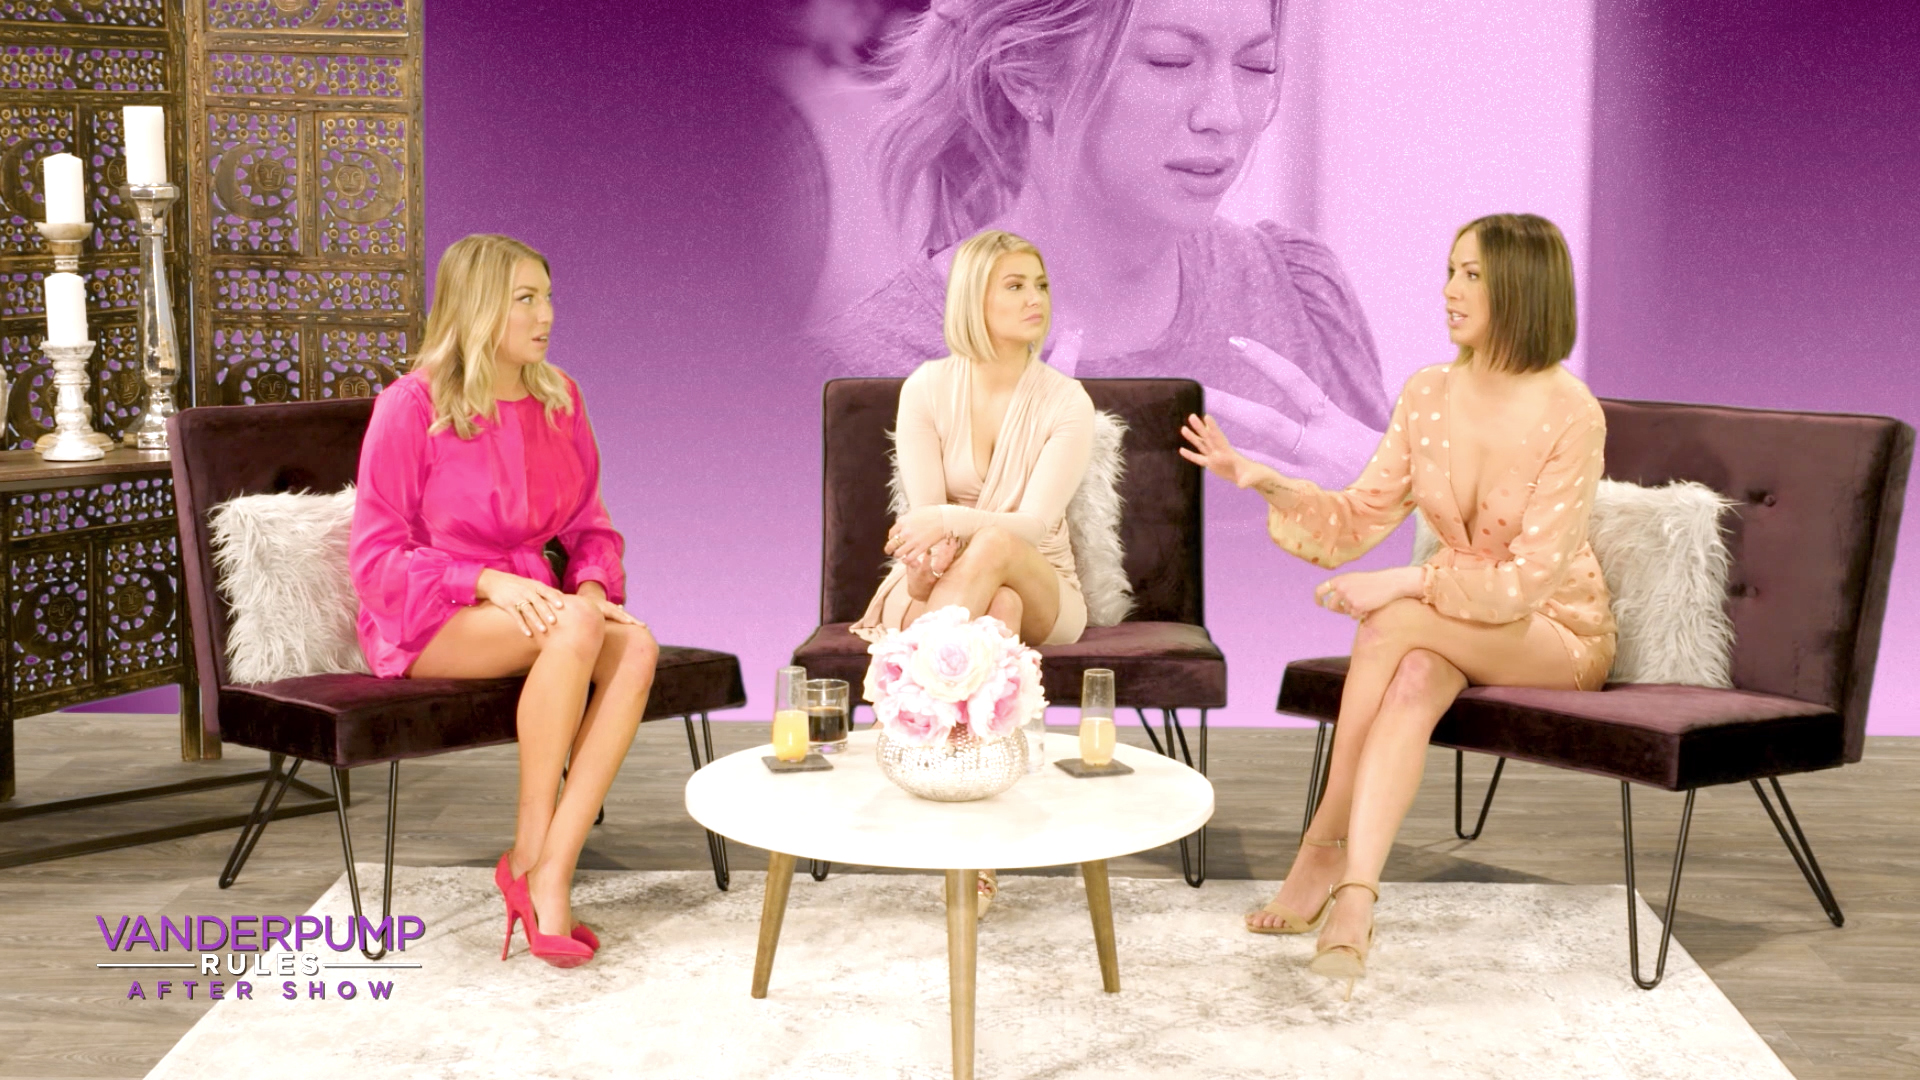 Stassi Schroeder Reveals the Most Intense Scene She Has Ever Shot for Vanderpump Rules